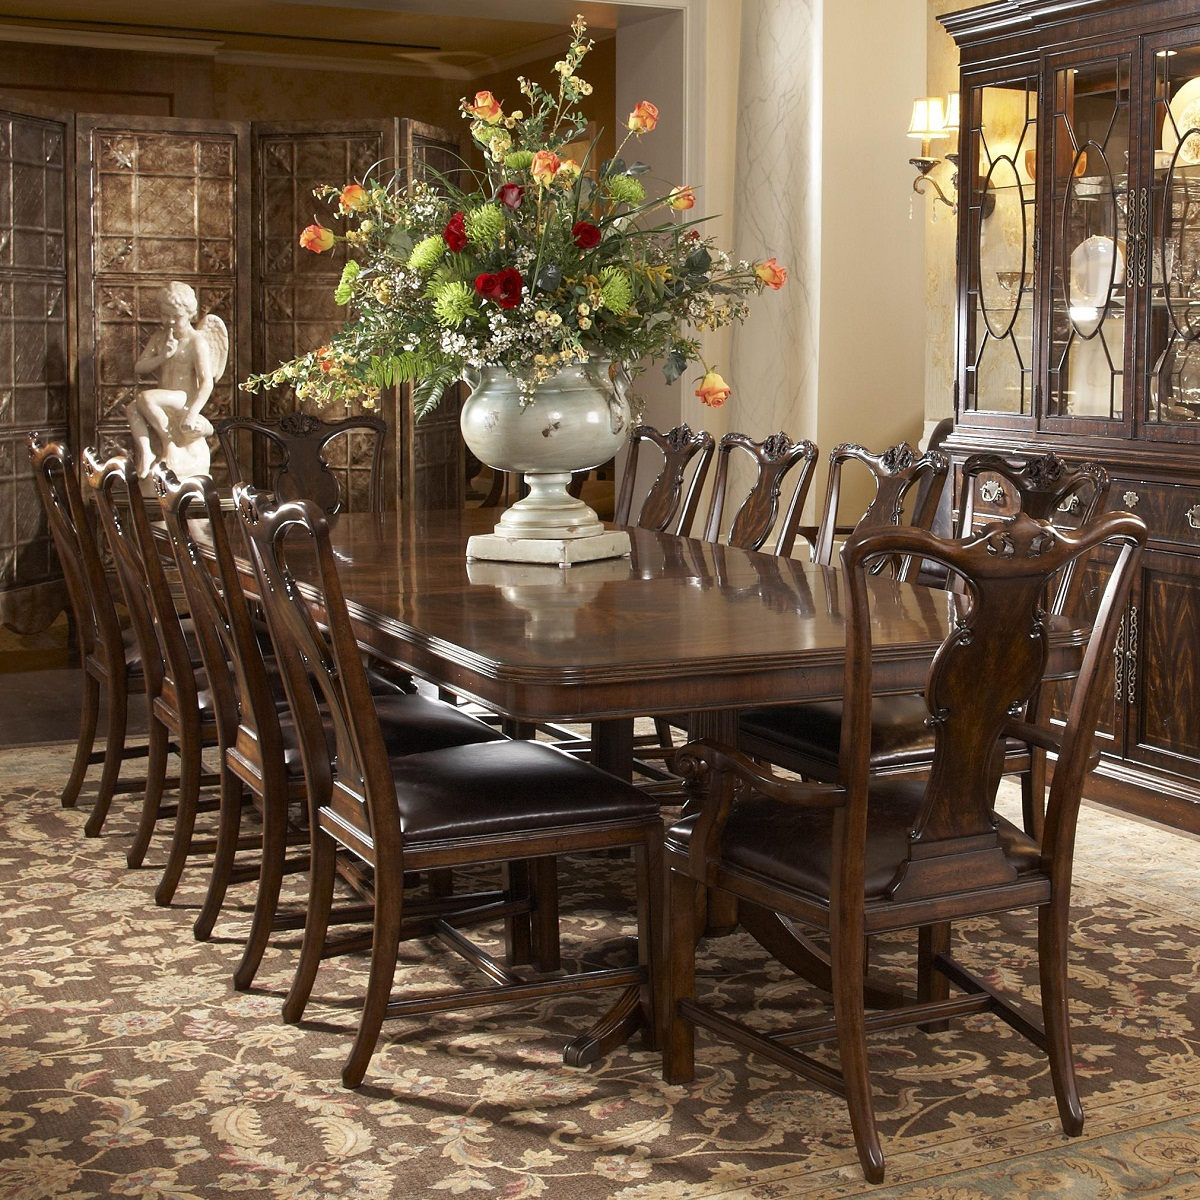 Fine Furniture Hyde Park Double Pedestal Dining Table in